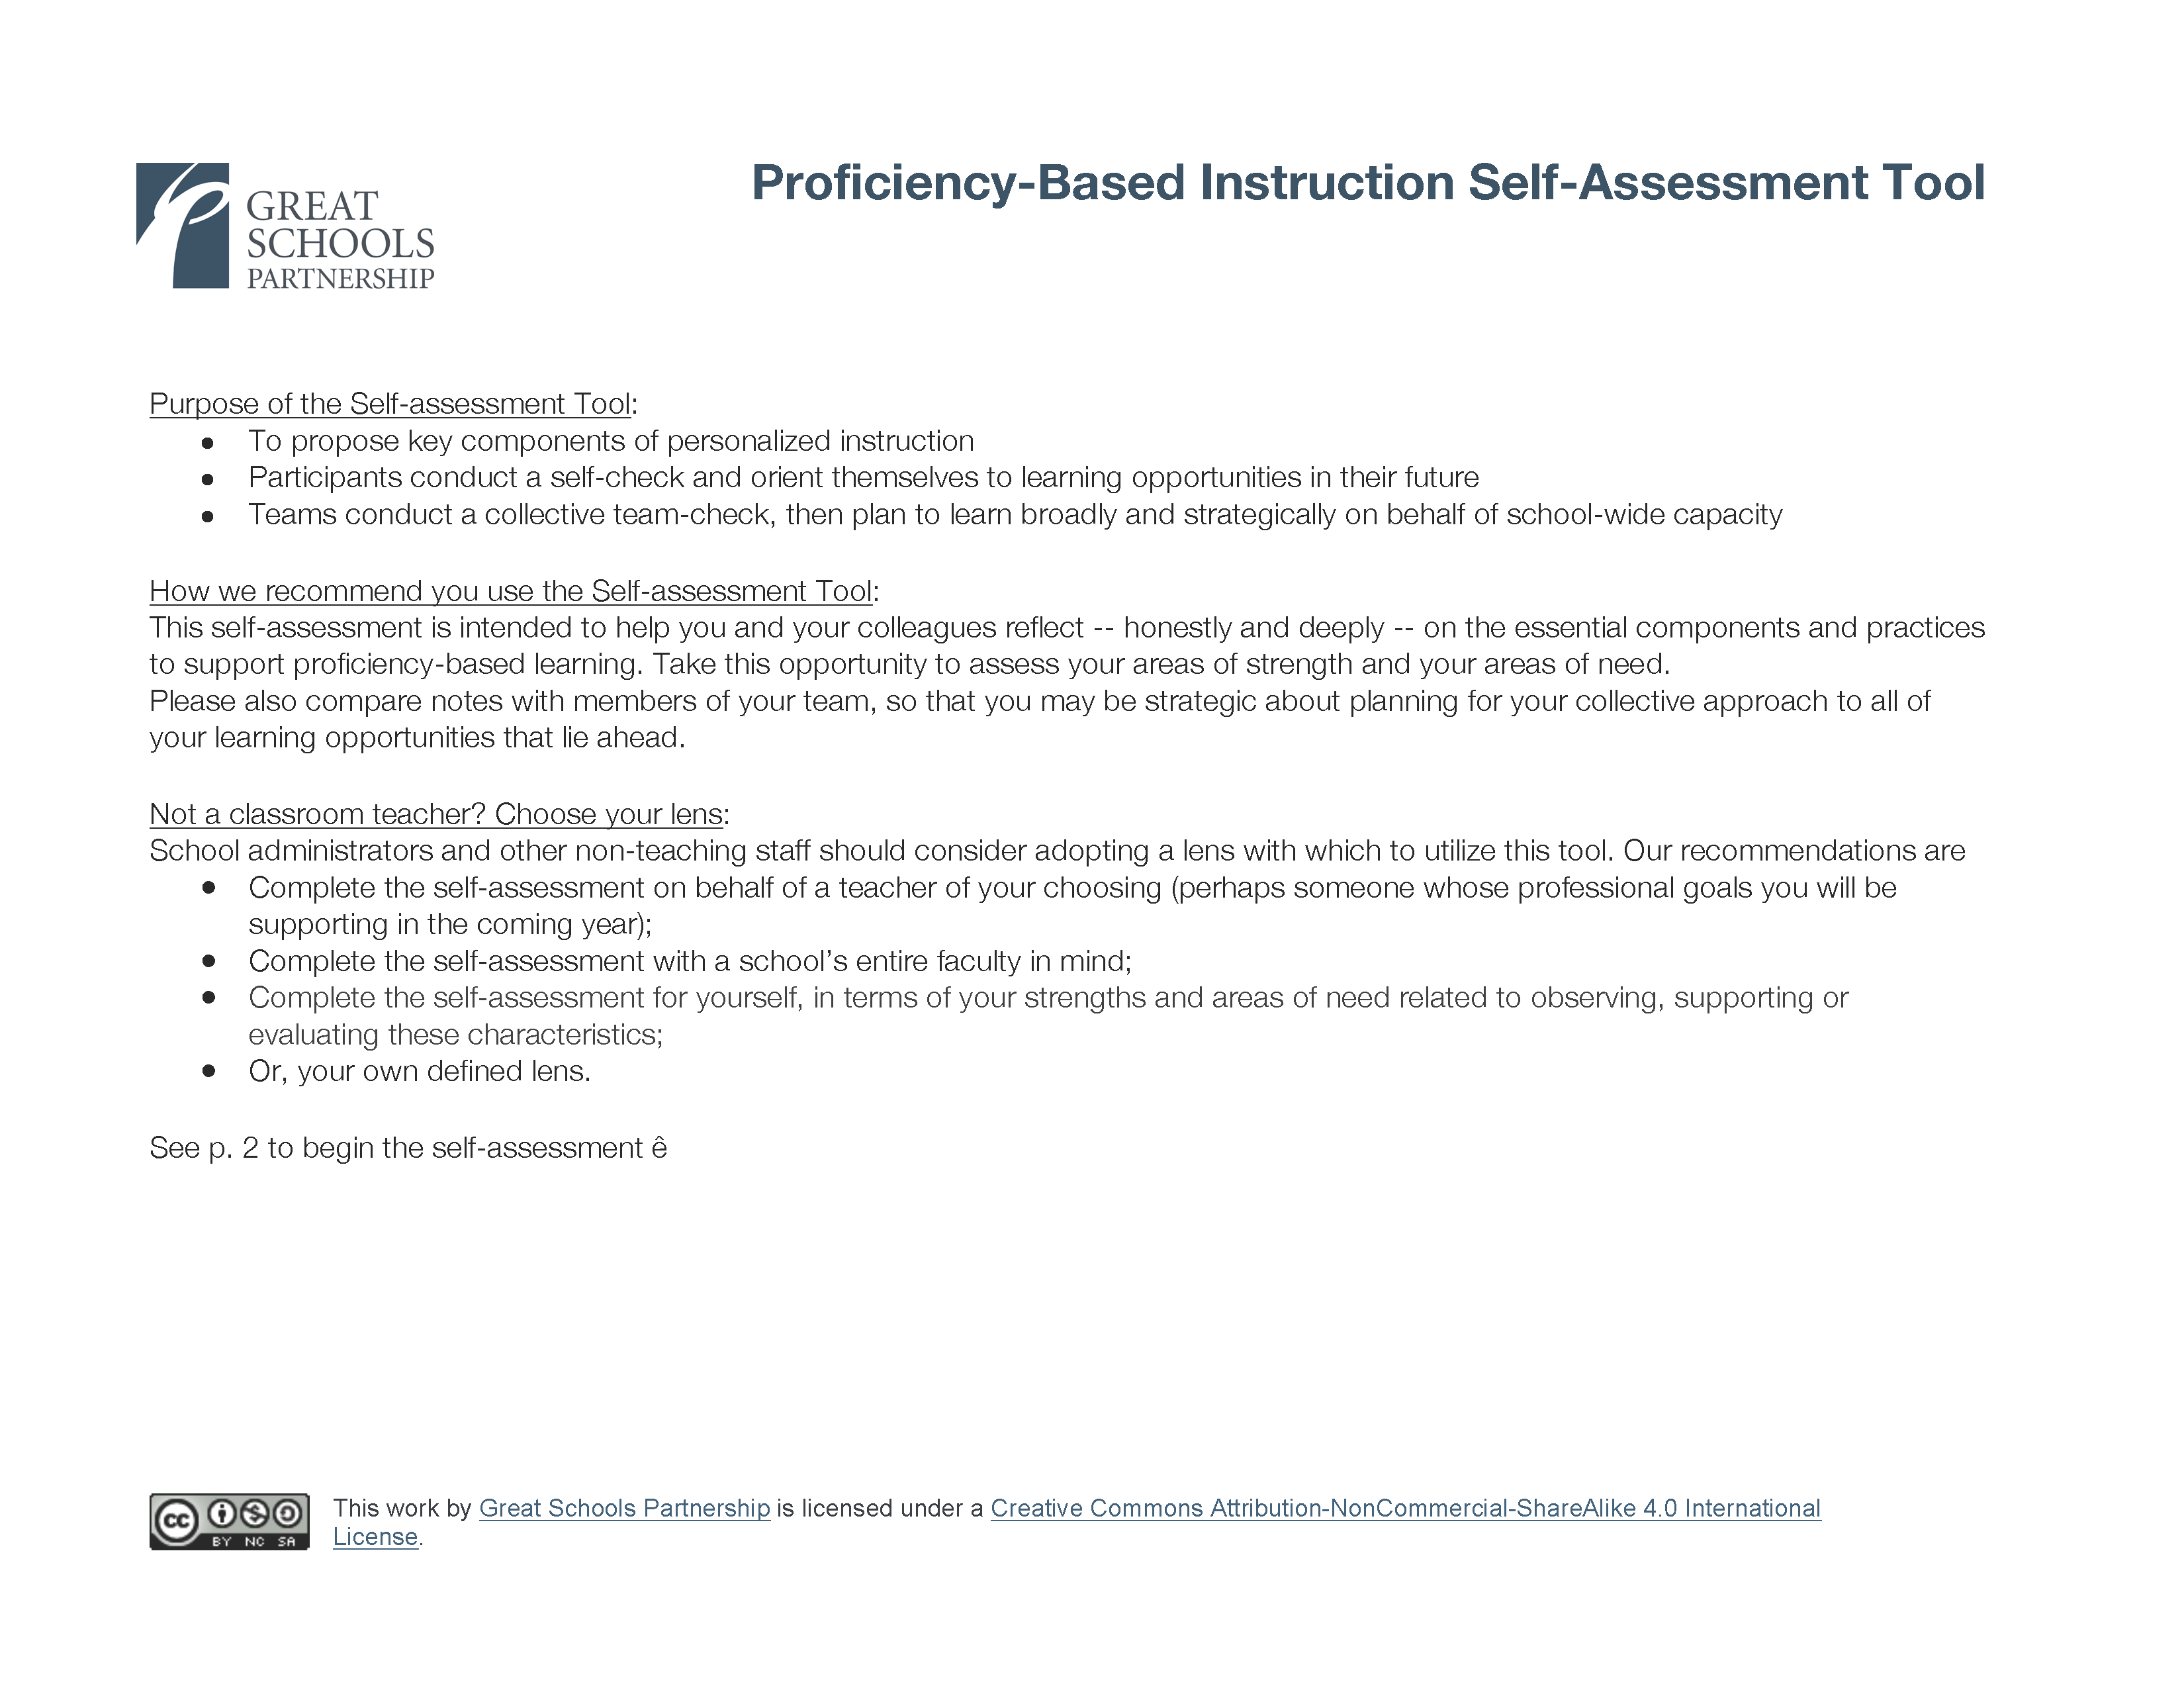 Pages from L5_Self-Assessment-Tool (1) | Great Schools Partnership